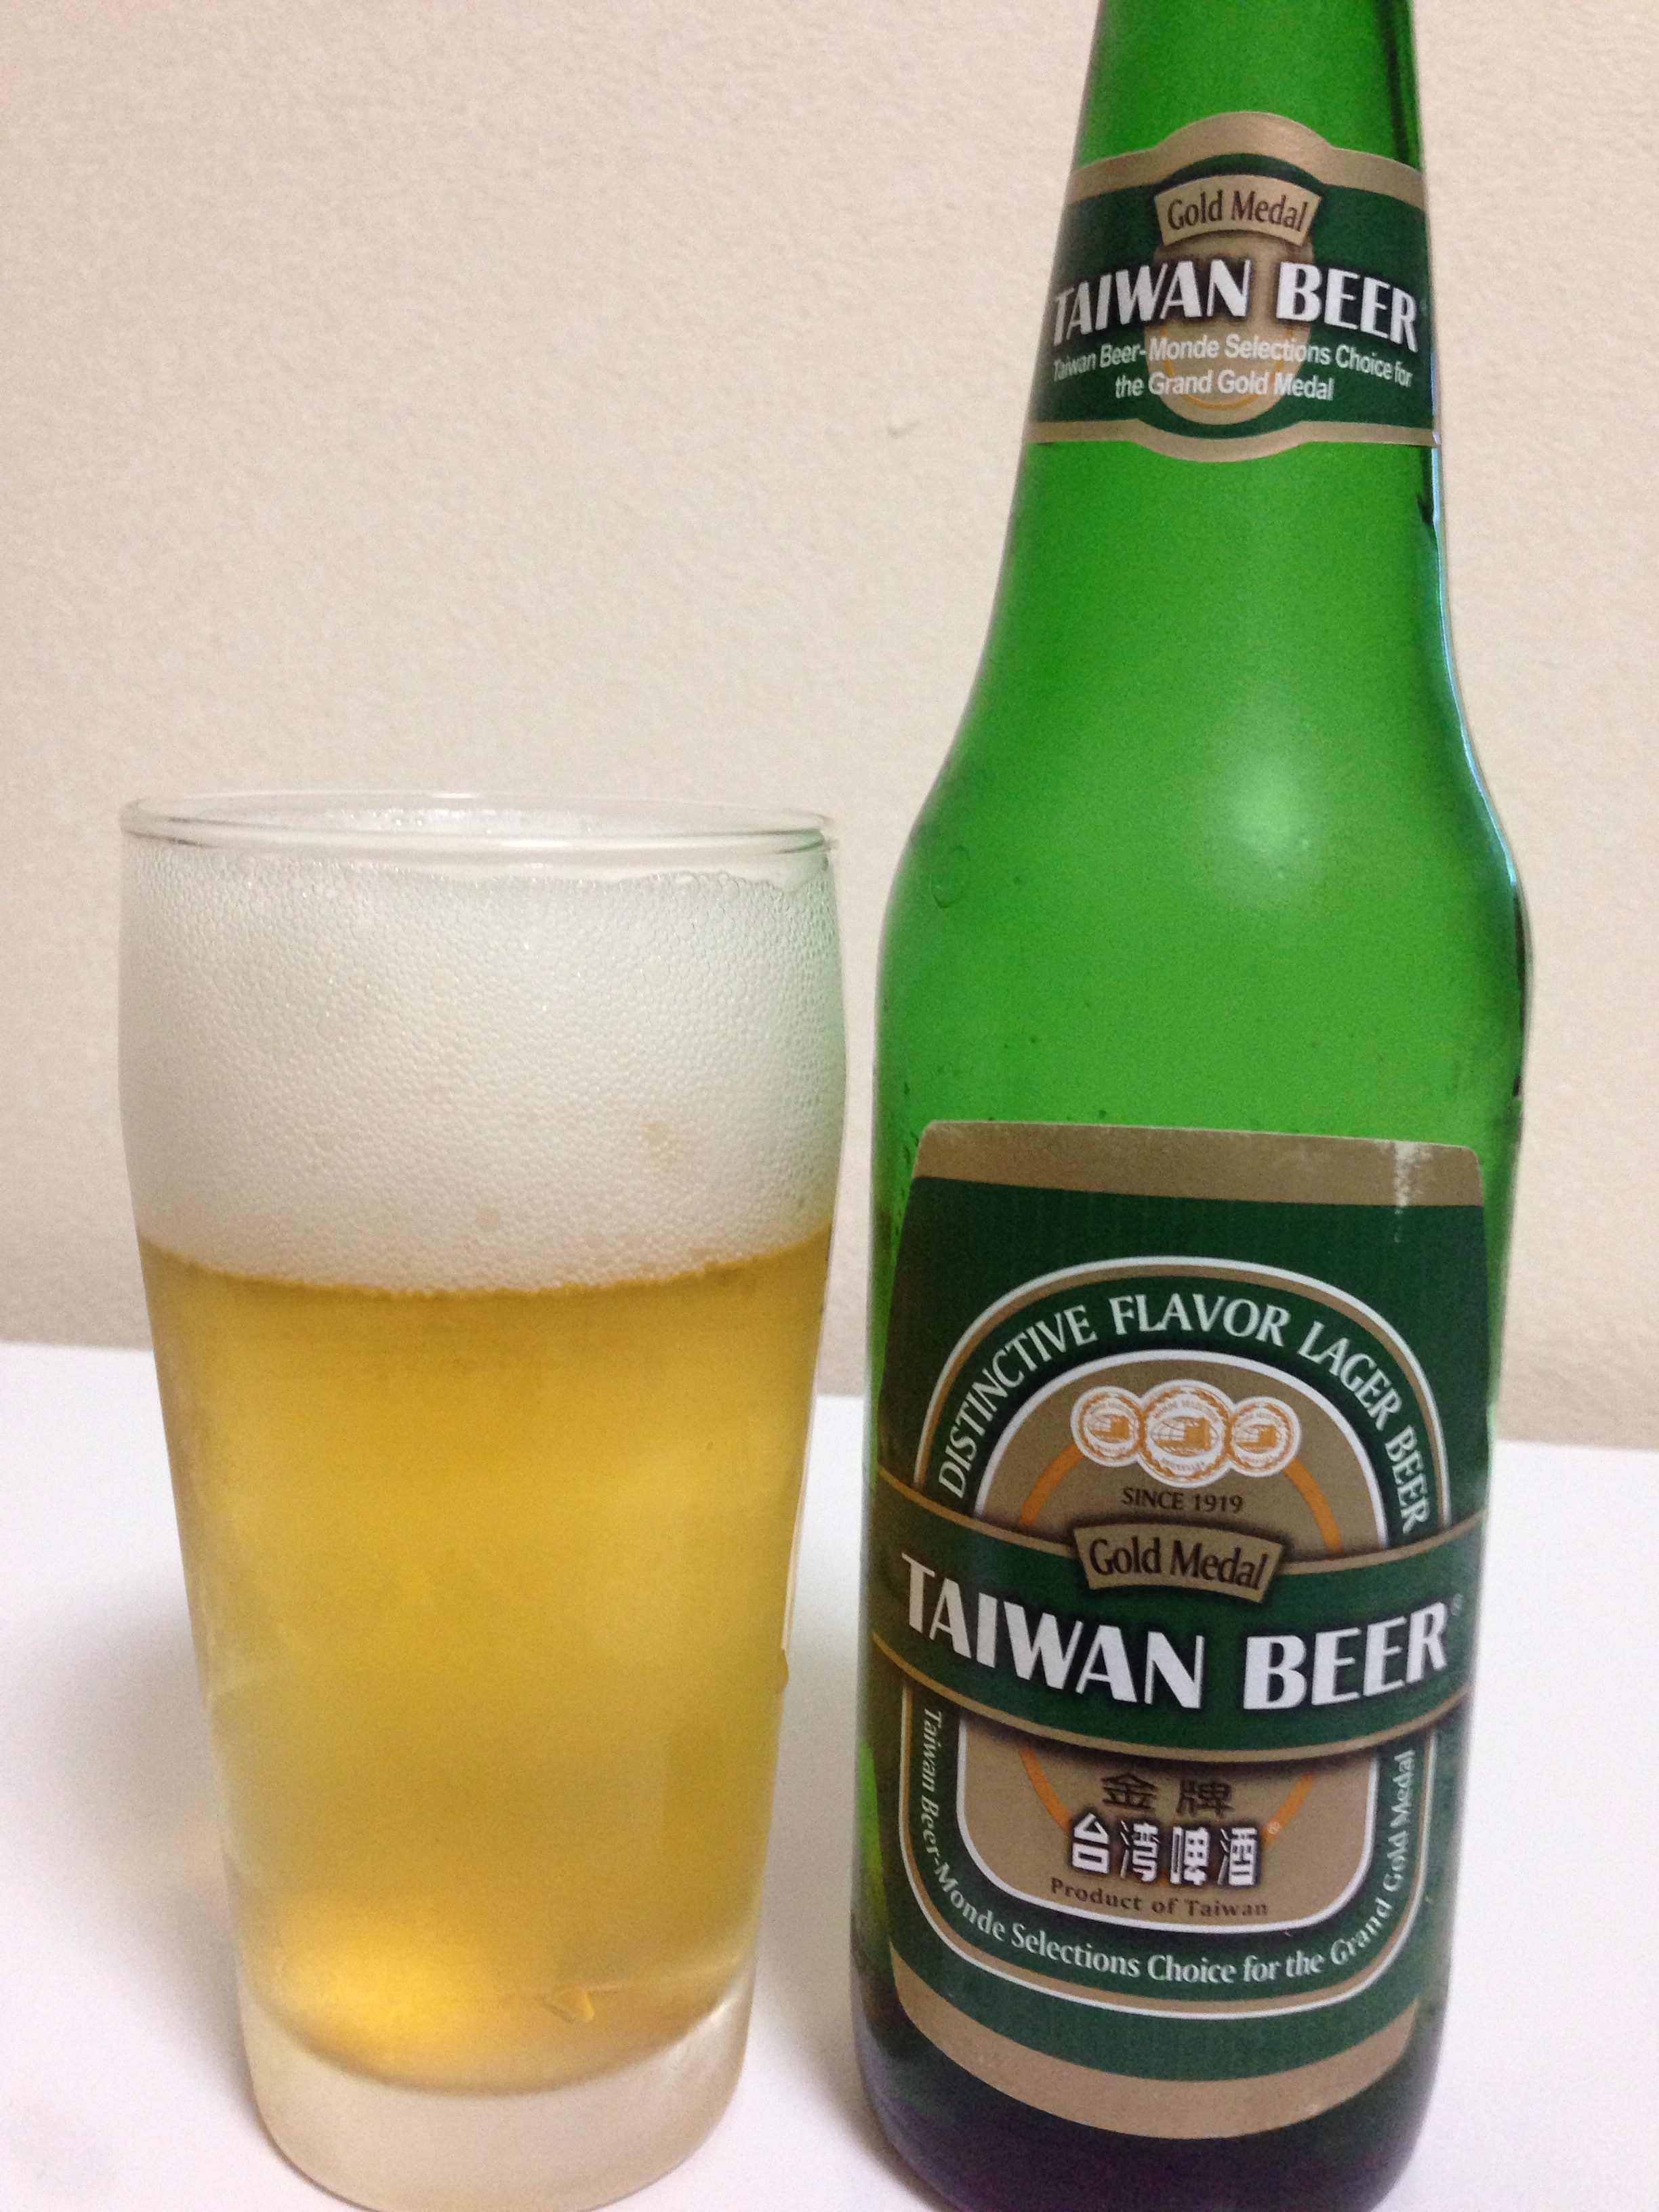 TAIWAN BEER GOLD MEDAL(台湾ビール 金牌)